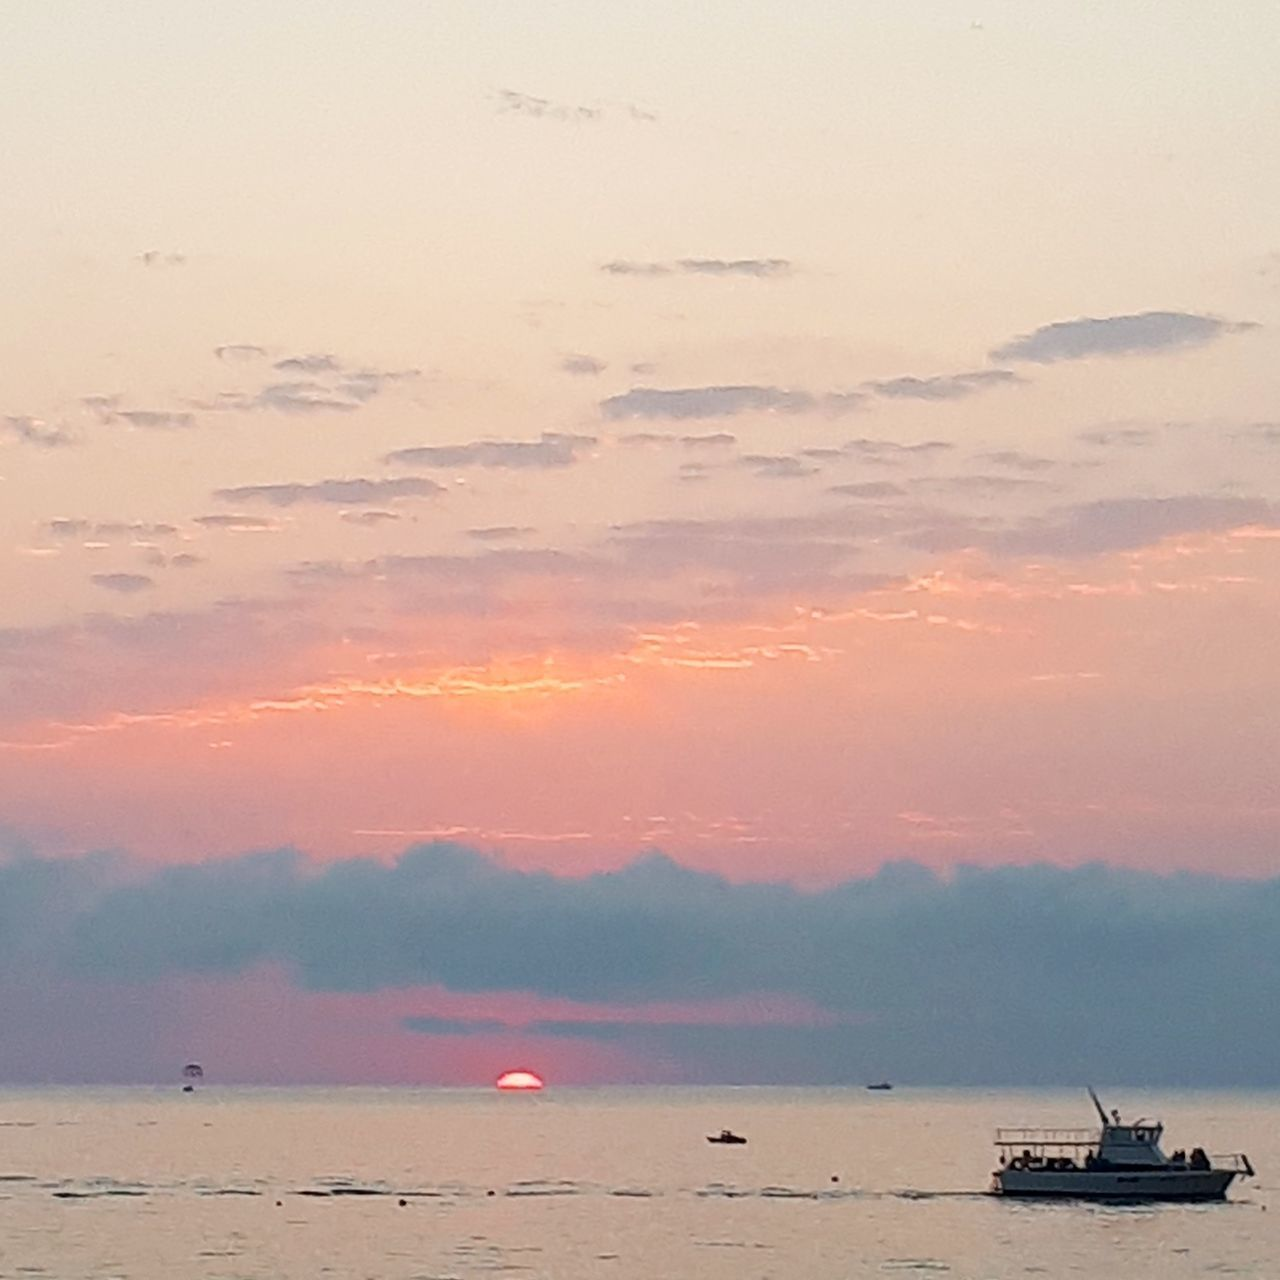 sunset, beauty in nature, water, scenics, nature, sky, sea, tranquility, cloud - sky, no people, transportation, nautical vessel, outdoors, horizon over water, bird, animal themes, day